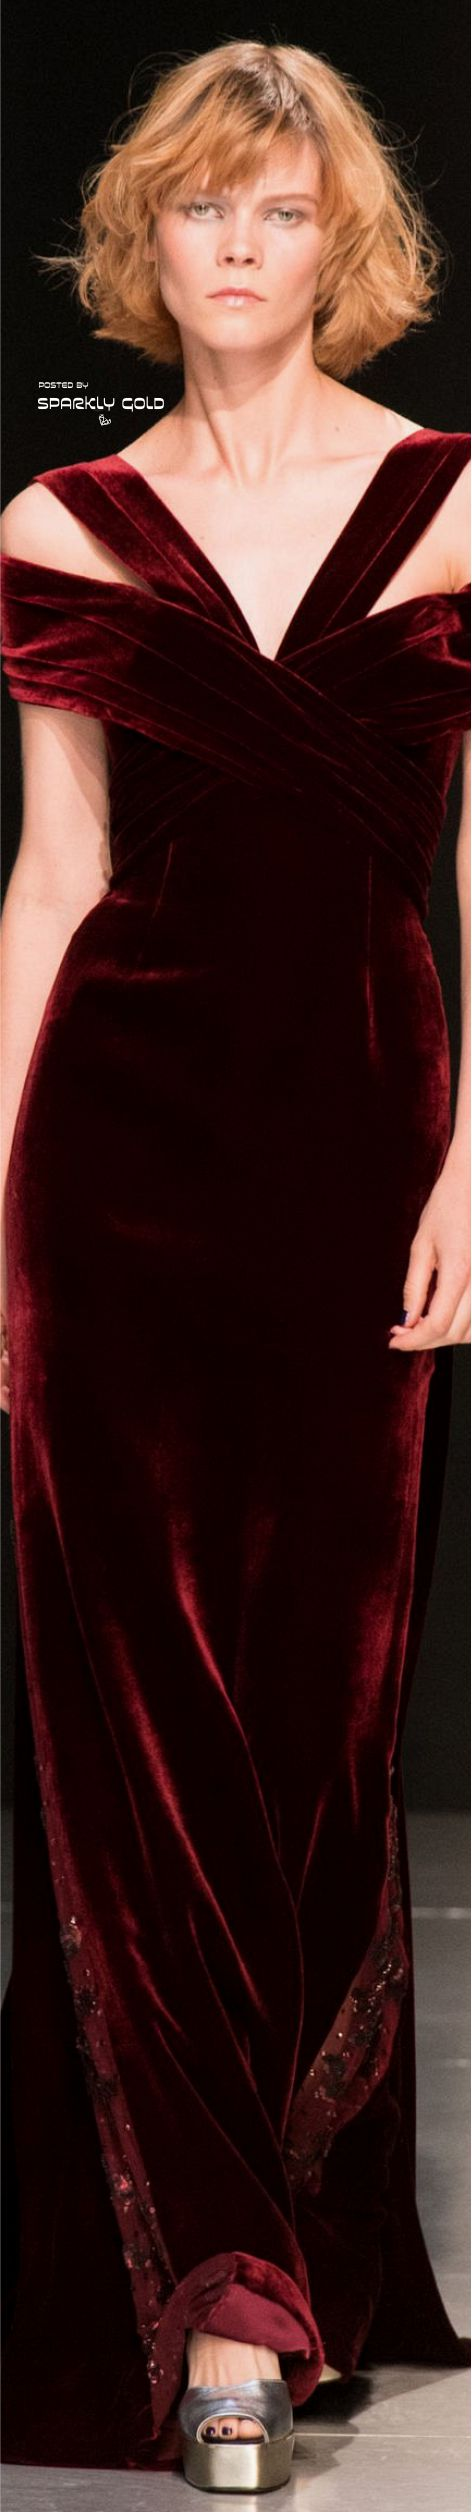 Georges chakra fall couture velvet pinterest georges